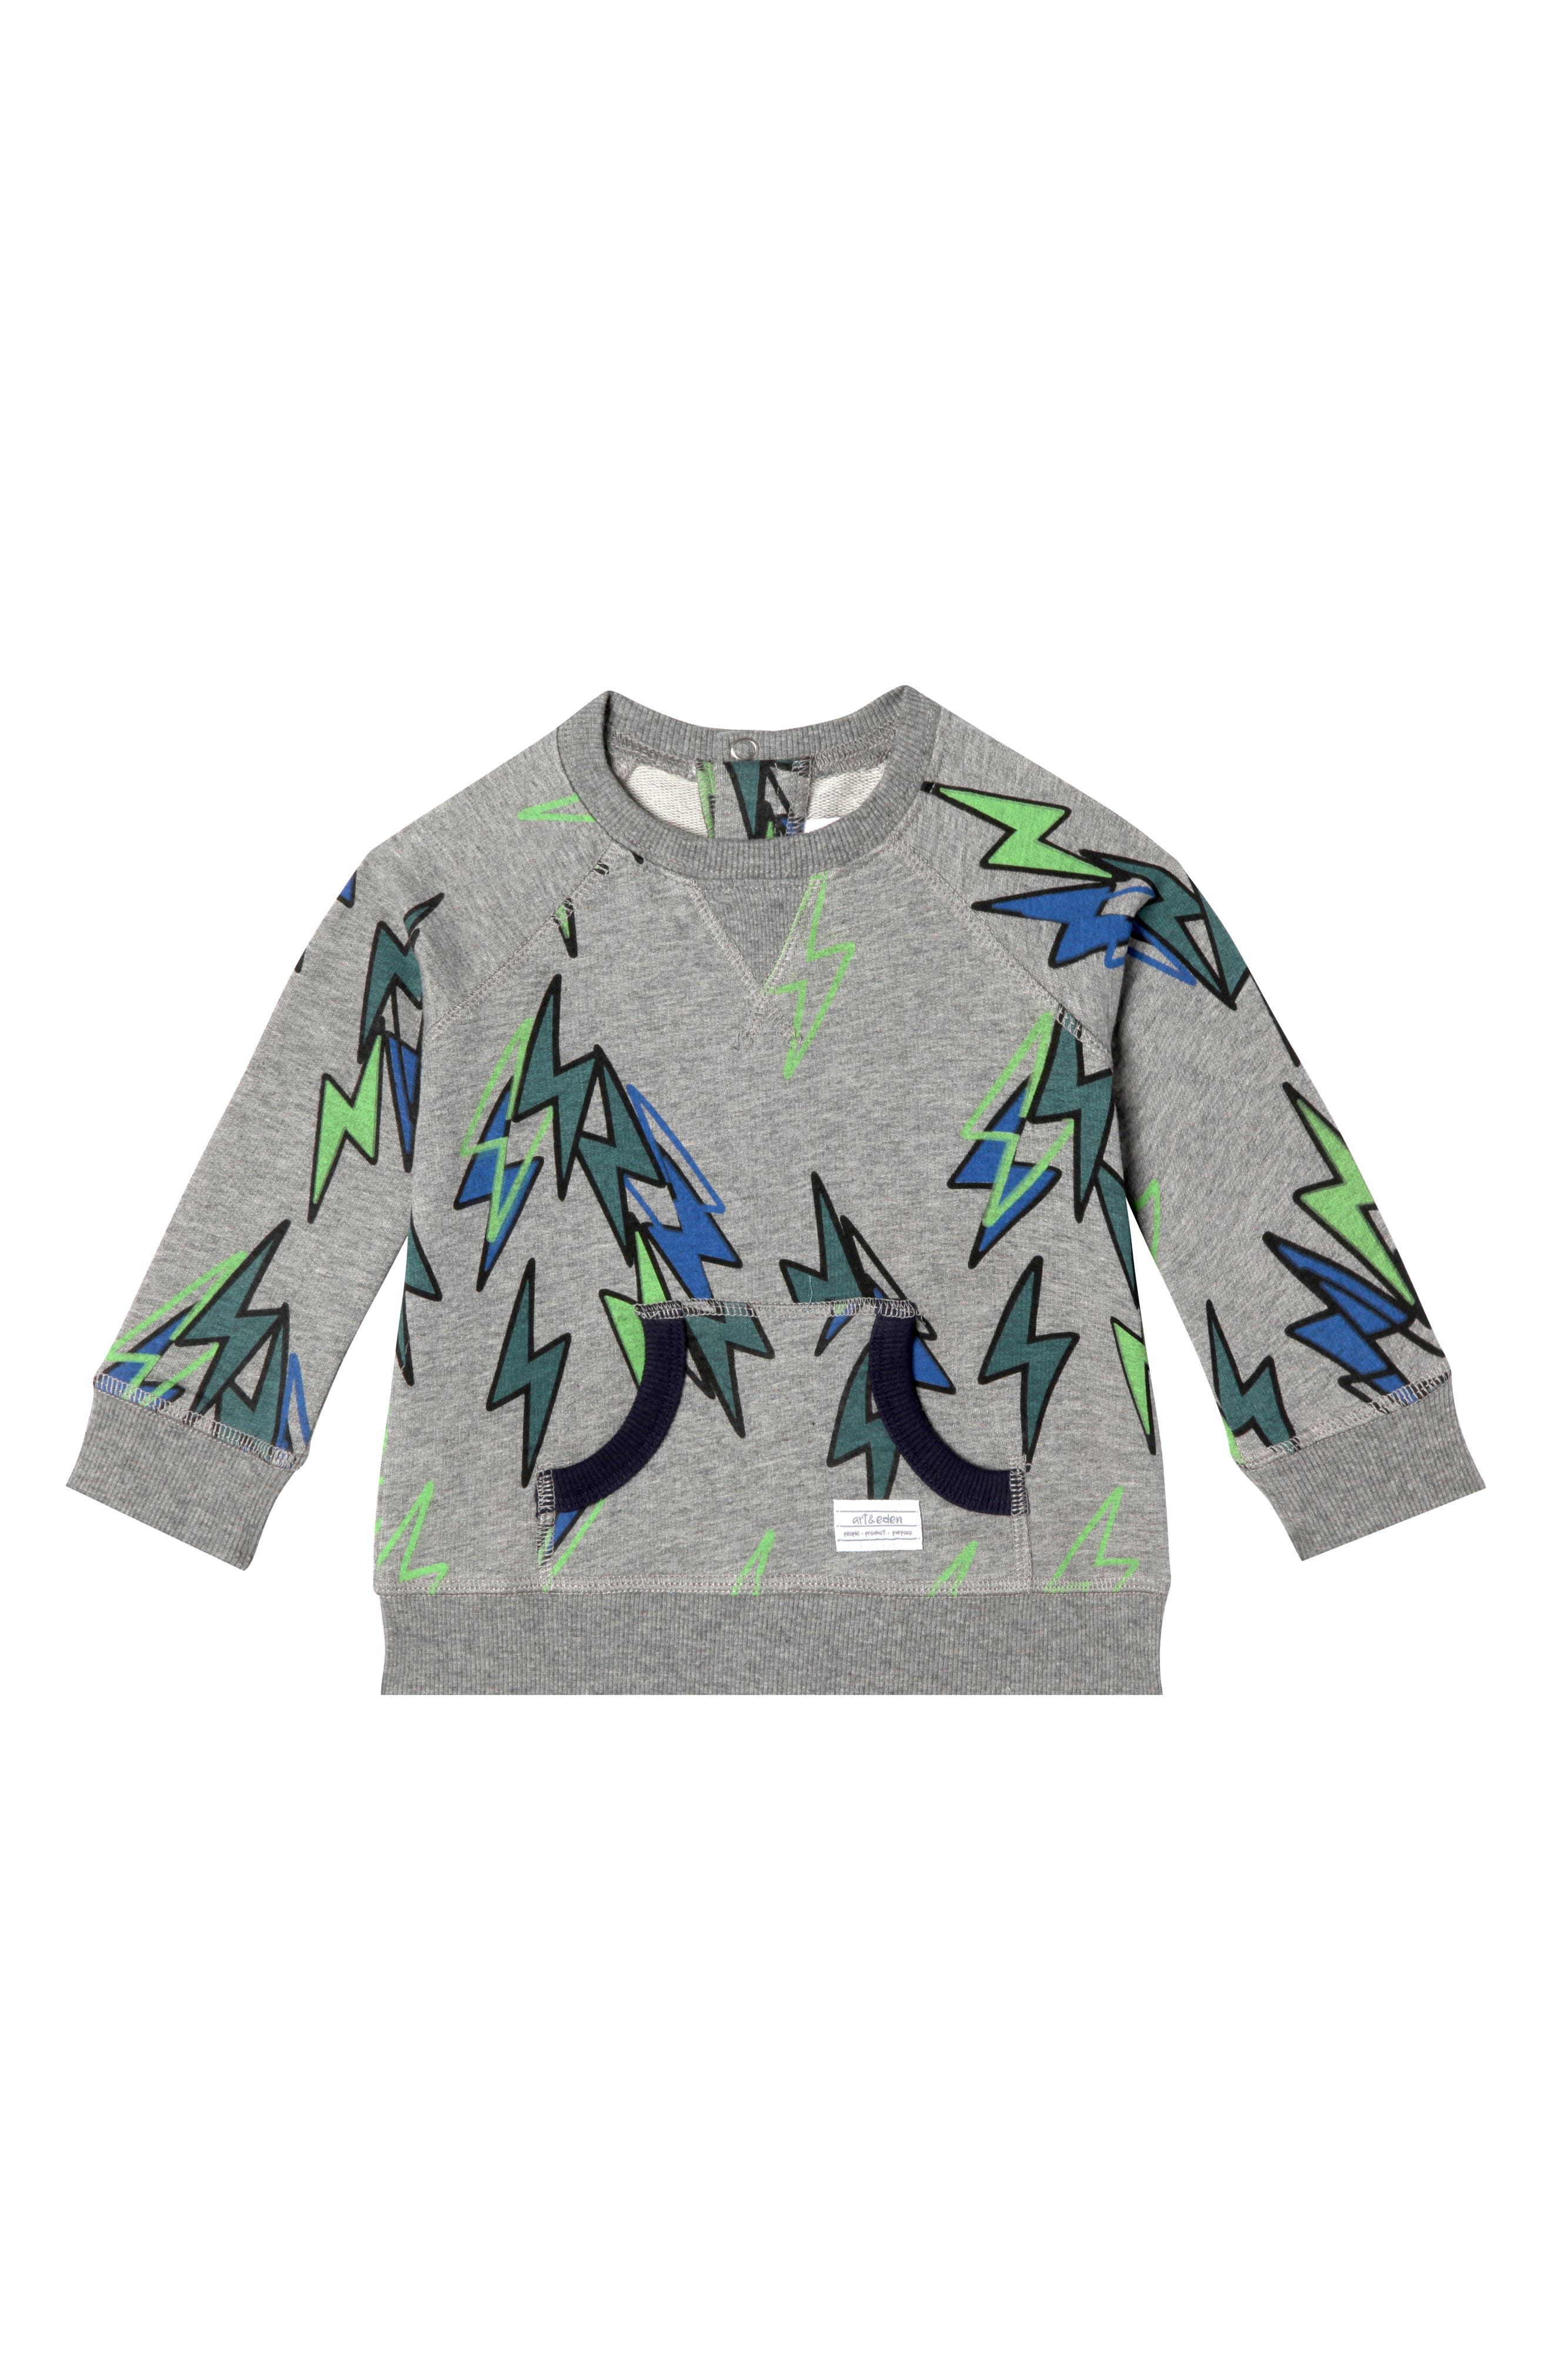 Eli Organic Cotton Sweatshirt,                         Main,                         color, LIGHTING BOLT